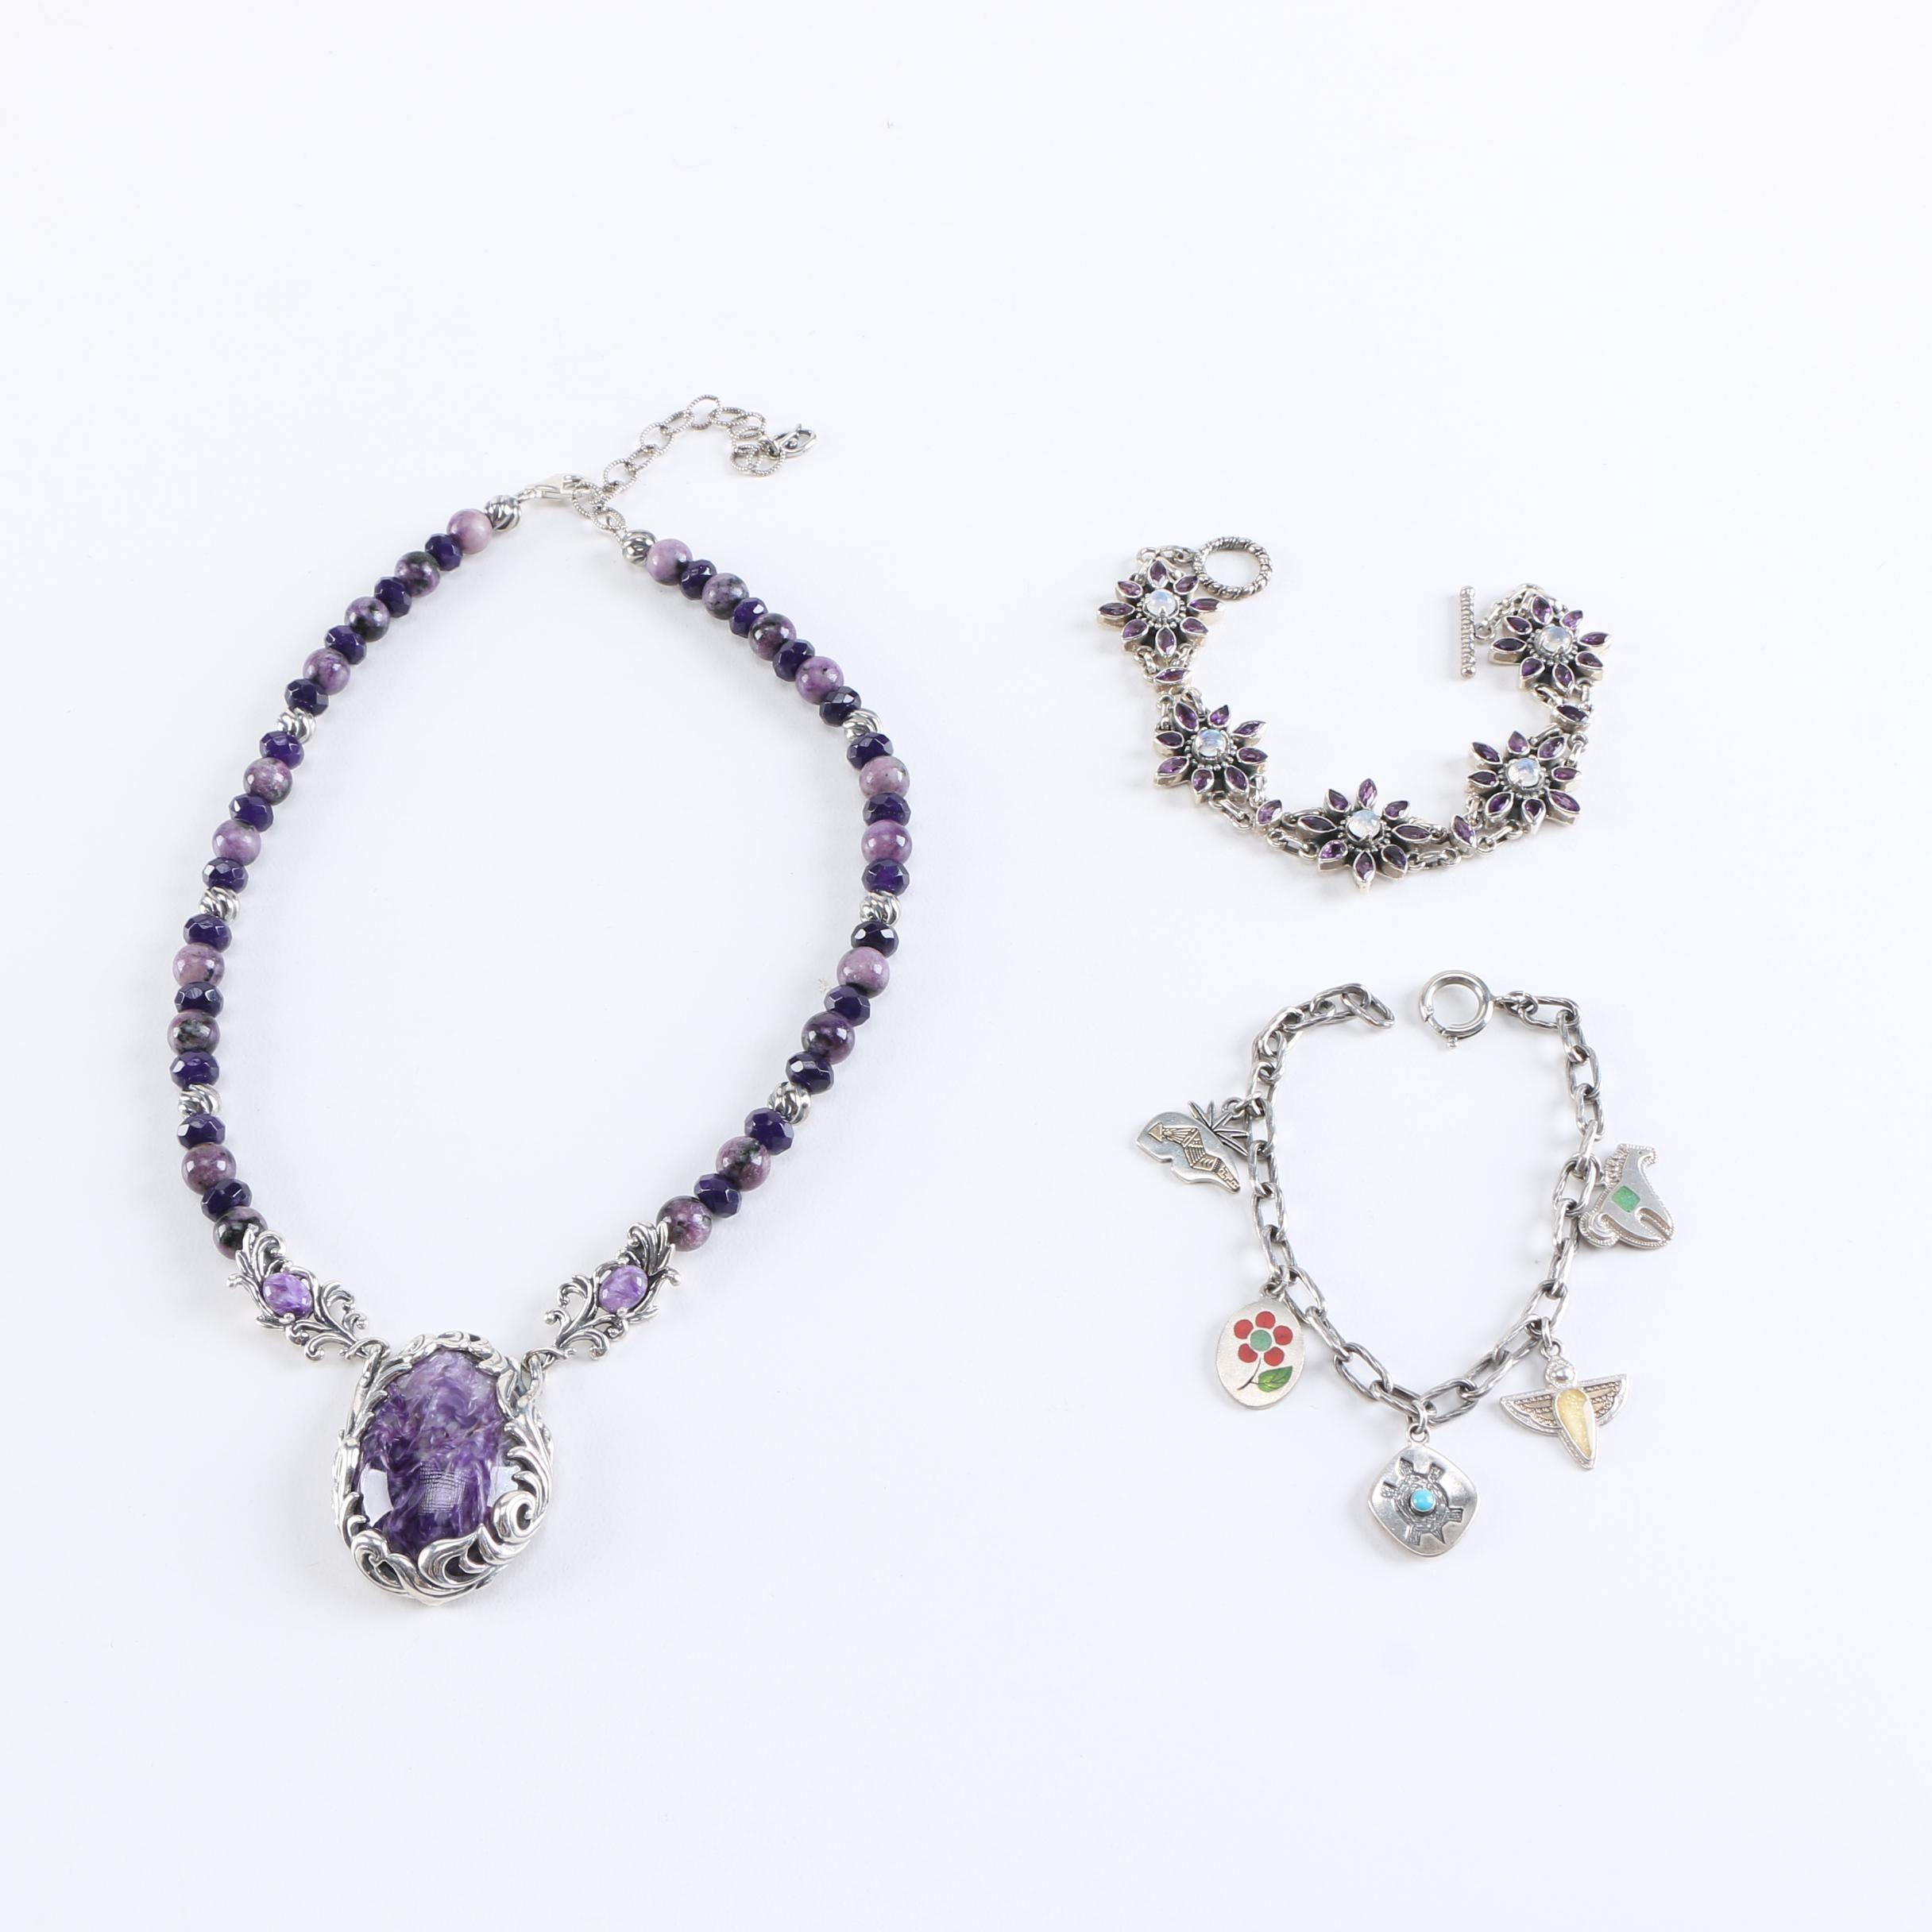 Sterling Silver and Gemstone Jewelry Featuring Carolyn Pollack